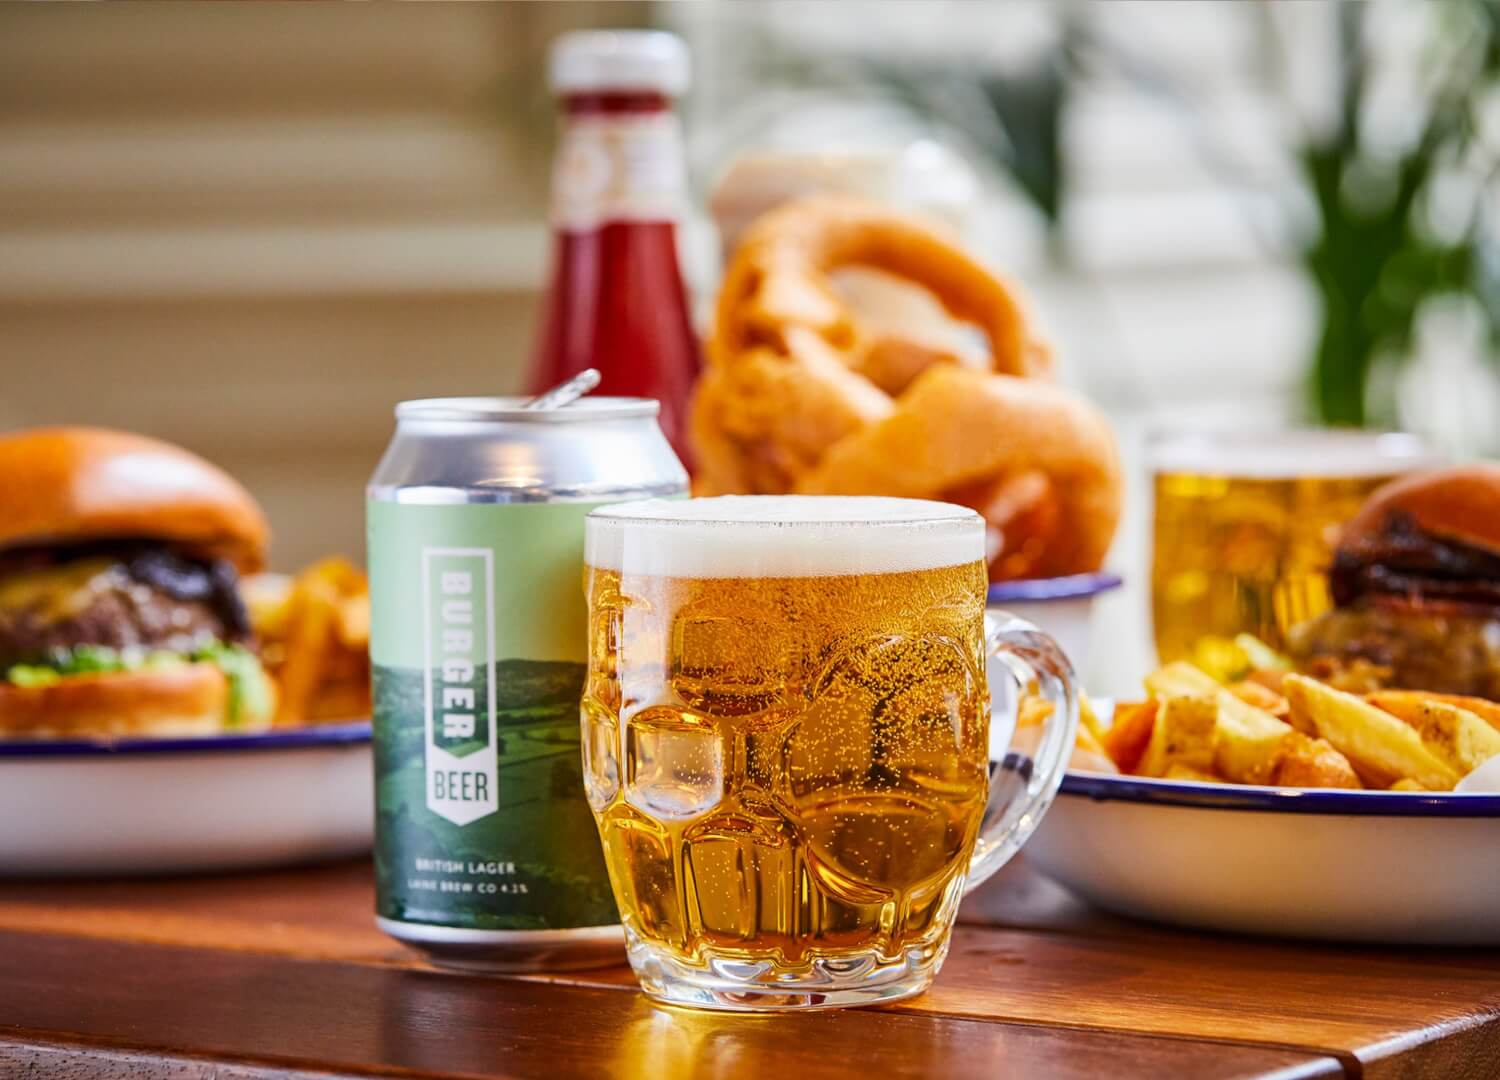 Burger Beer with Honest beef burgers for National burger day